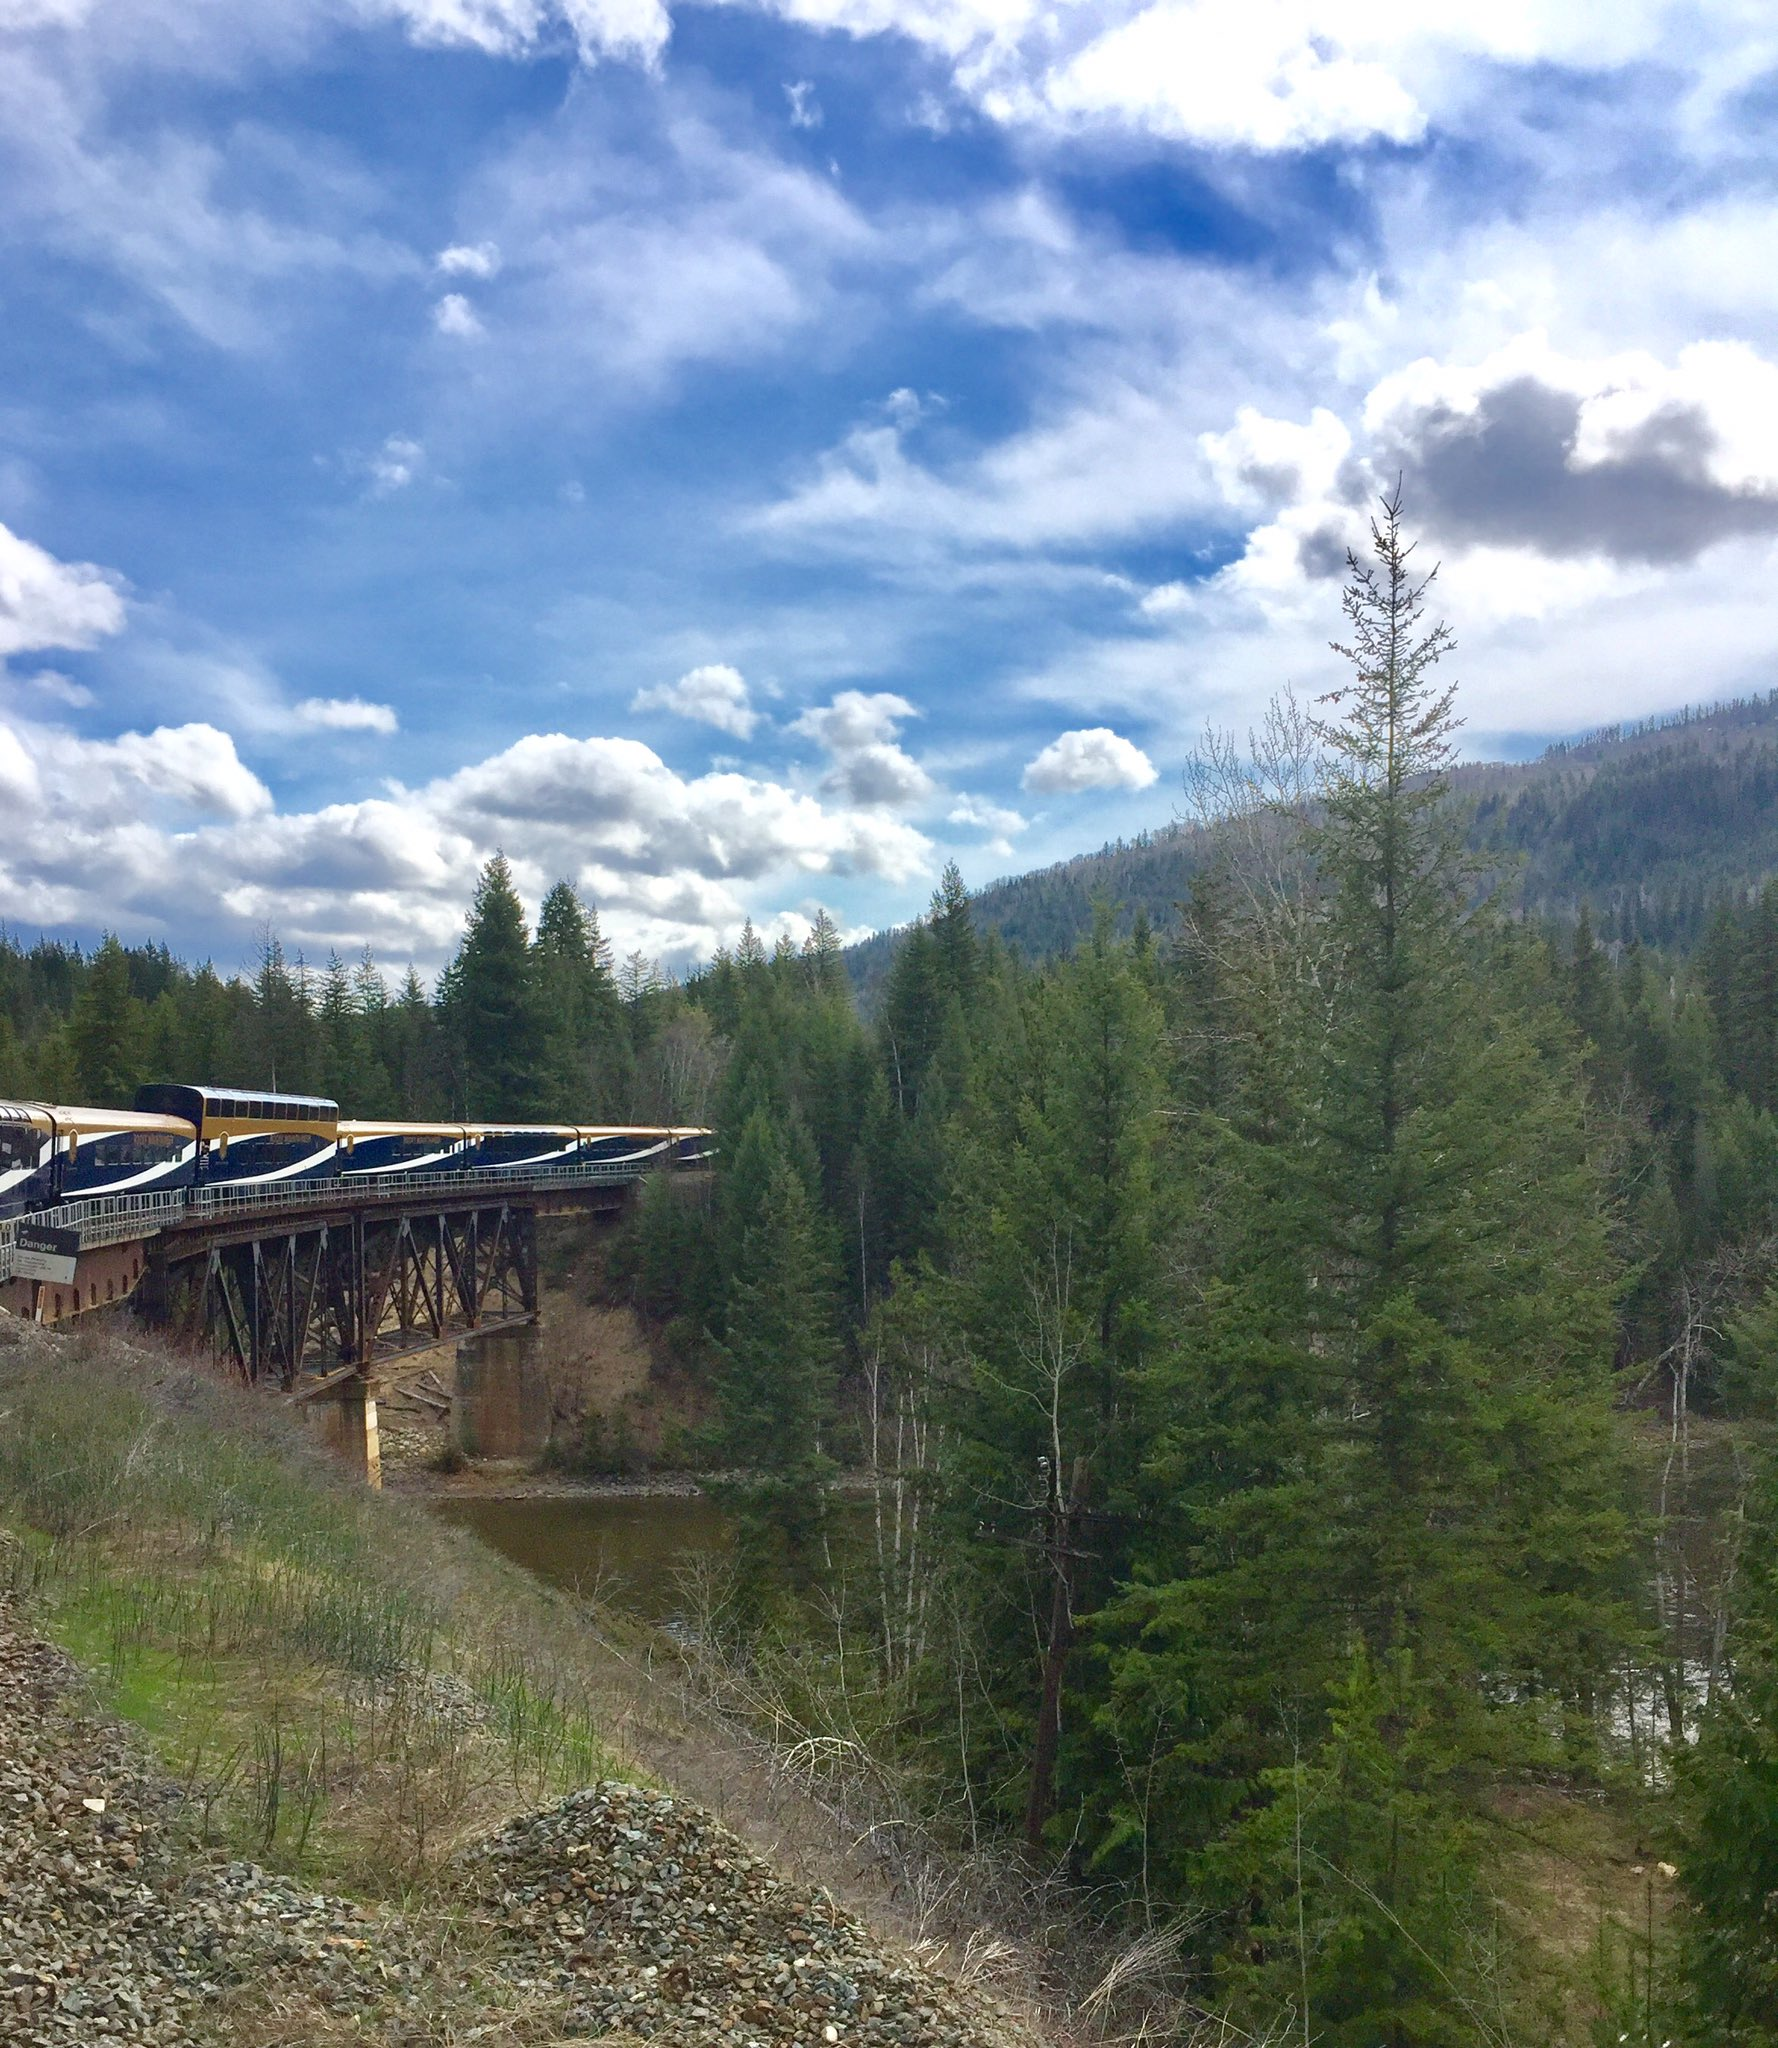 Carved through otherwise inaccessible terrain in the #CanadianRockies is the #iconic #RockyMountaineer https://t.co/N2nn5Umz84